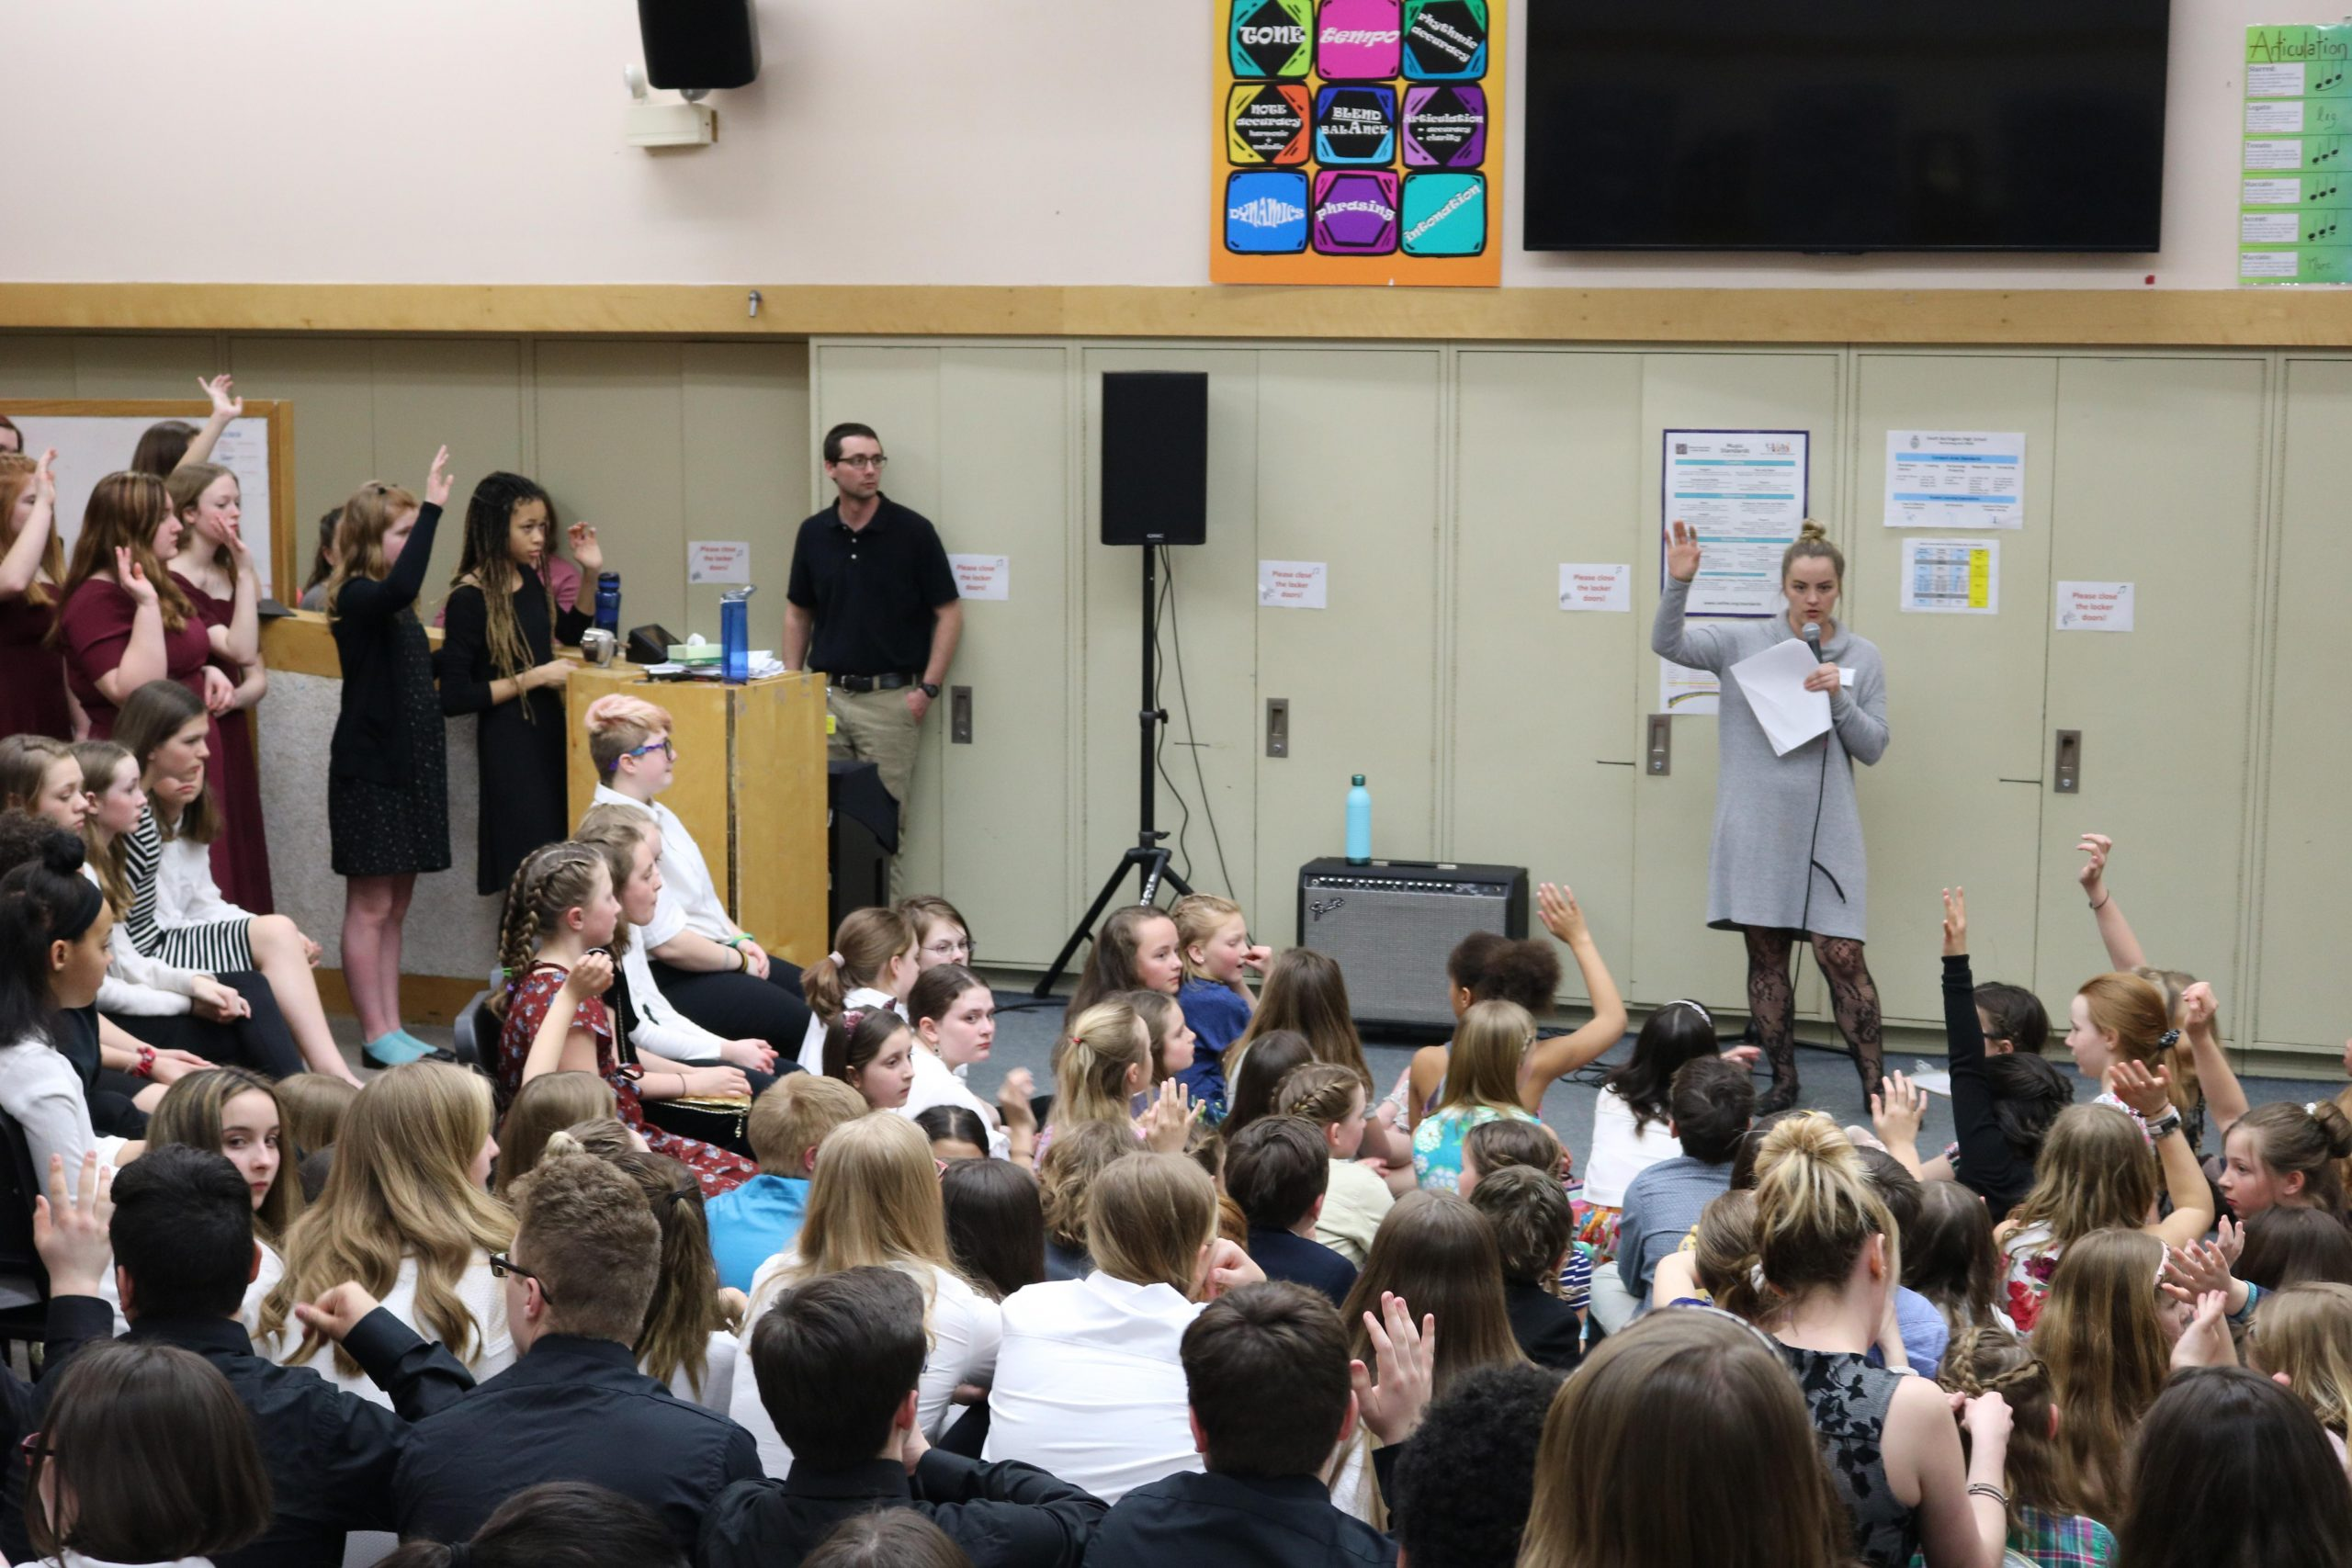 Eight Vermont School Choirs Participate in Choral Concert and Town Meeting on Arts Education